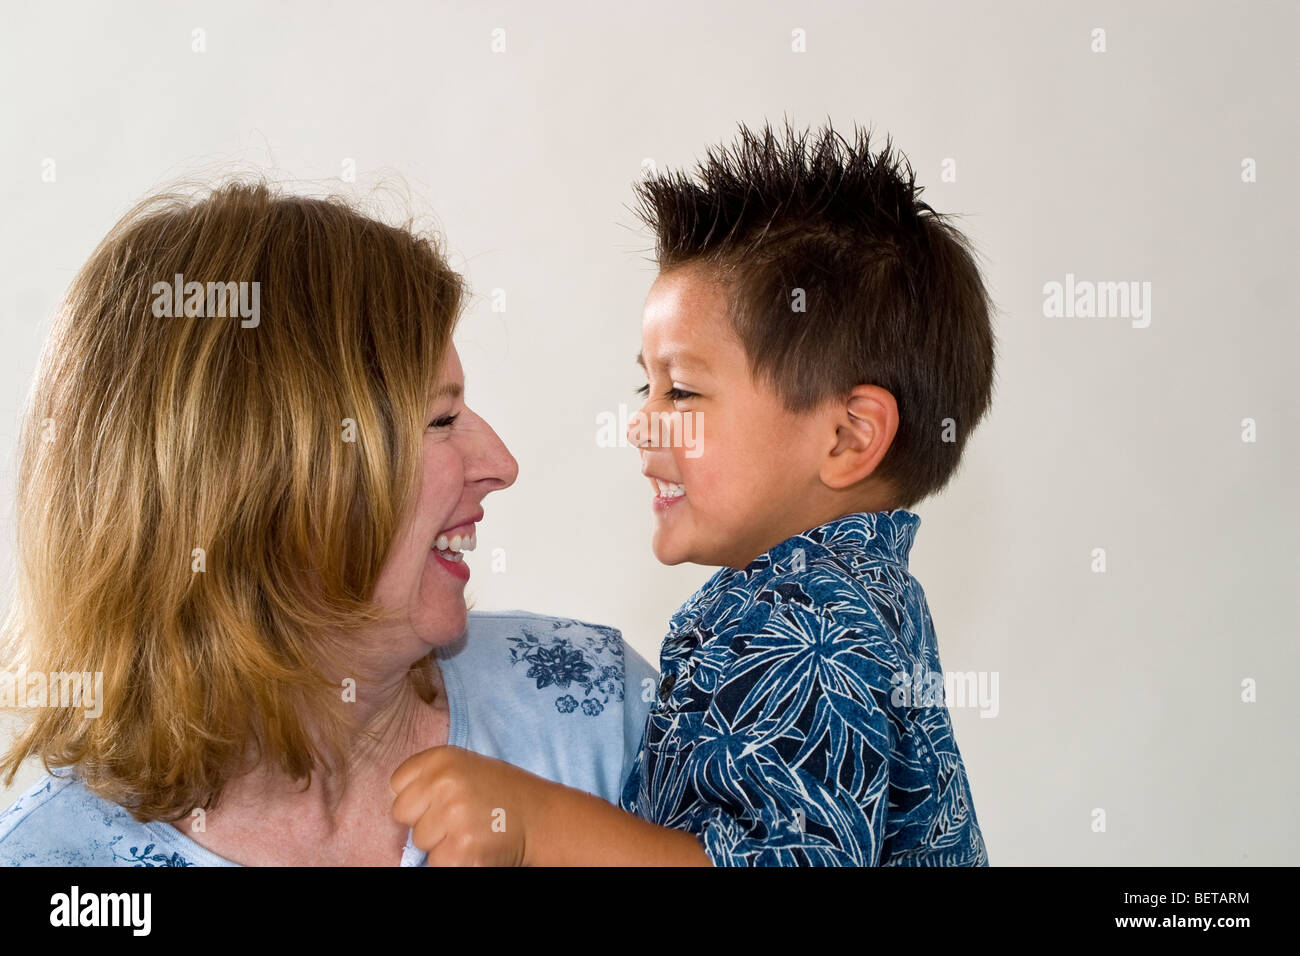 40 year old woman dating a 50 year old man